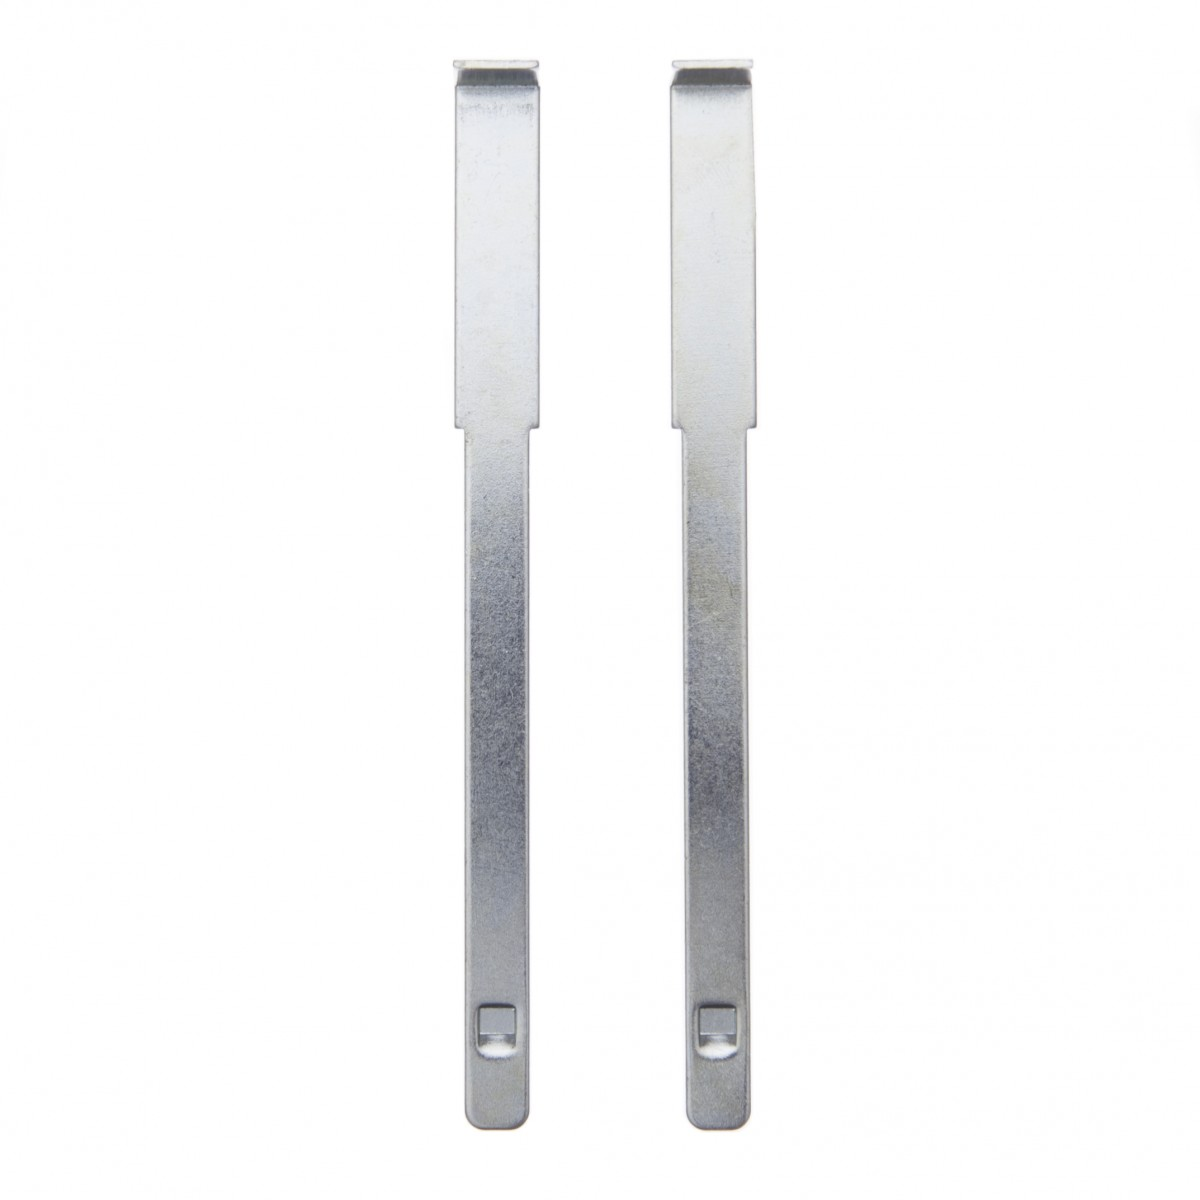 2pcs DIN Release Keys Compatible with Panasonic Head Unit CD Player Pins Pin Stereo Tools Car Radio Removal Tool Key